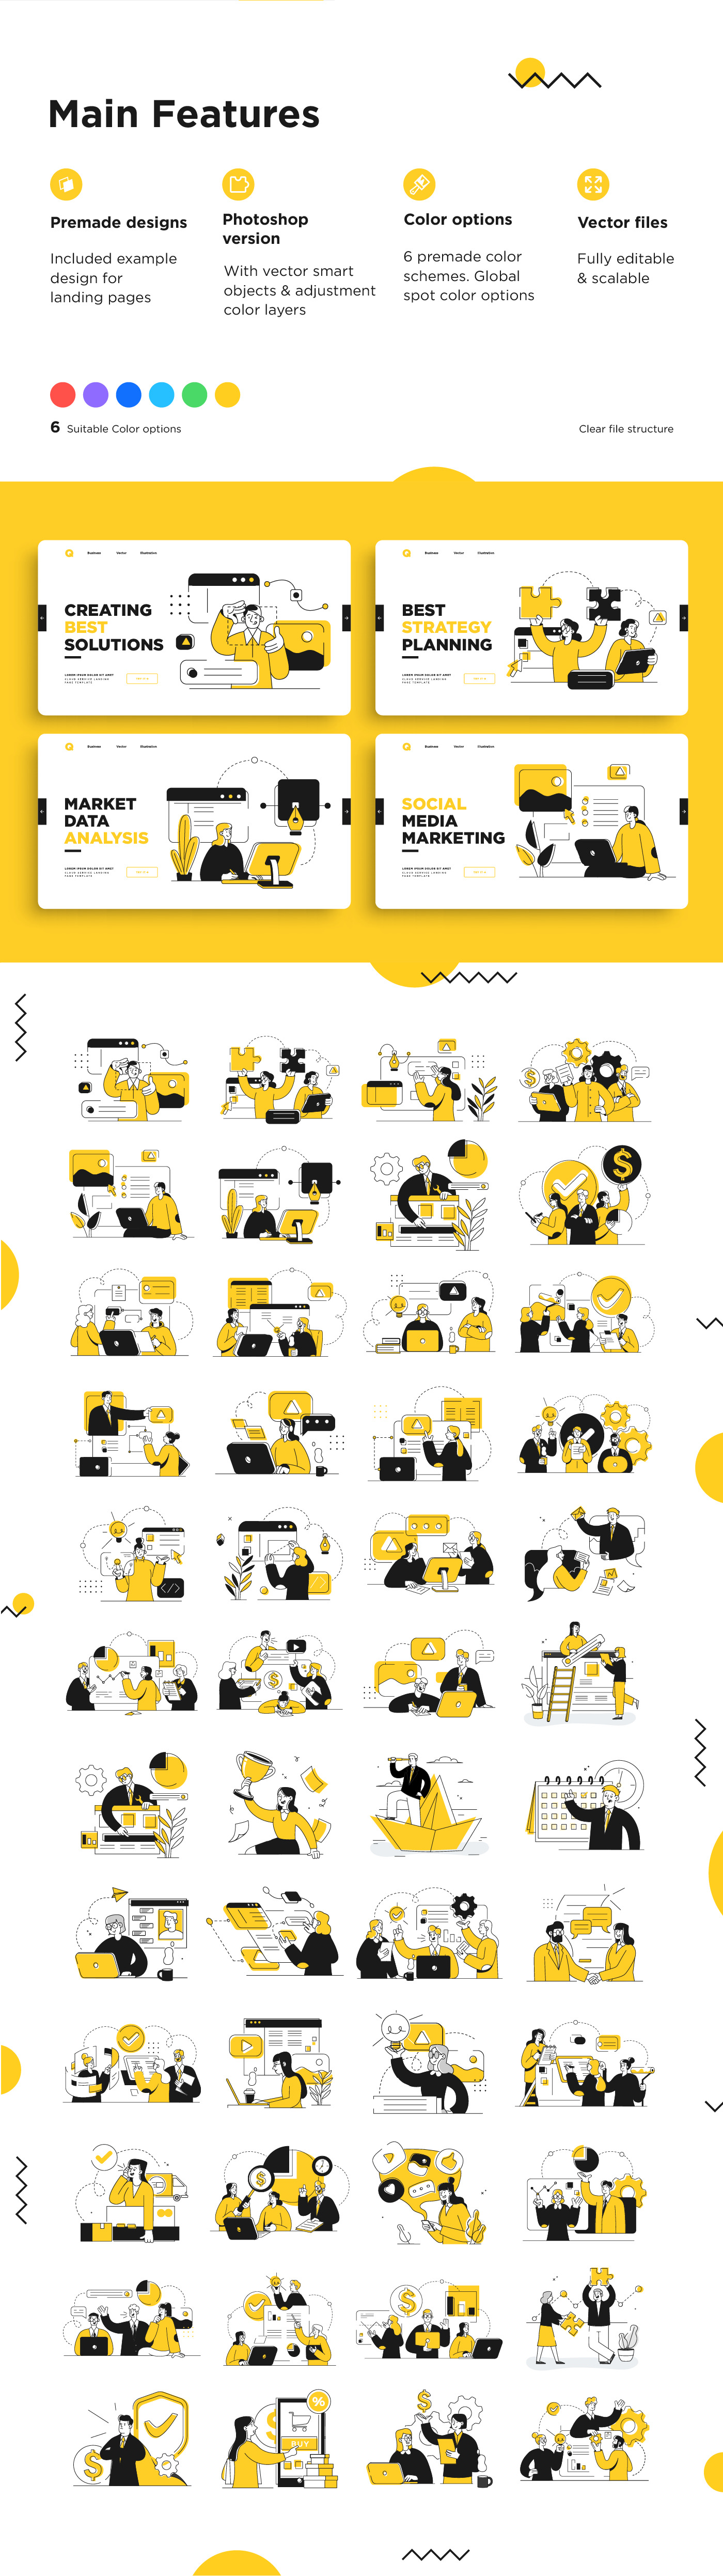 Business Marketing Illustrations in outline style.